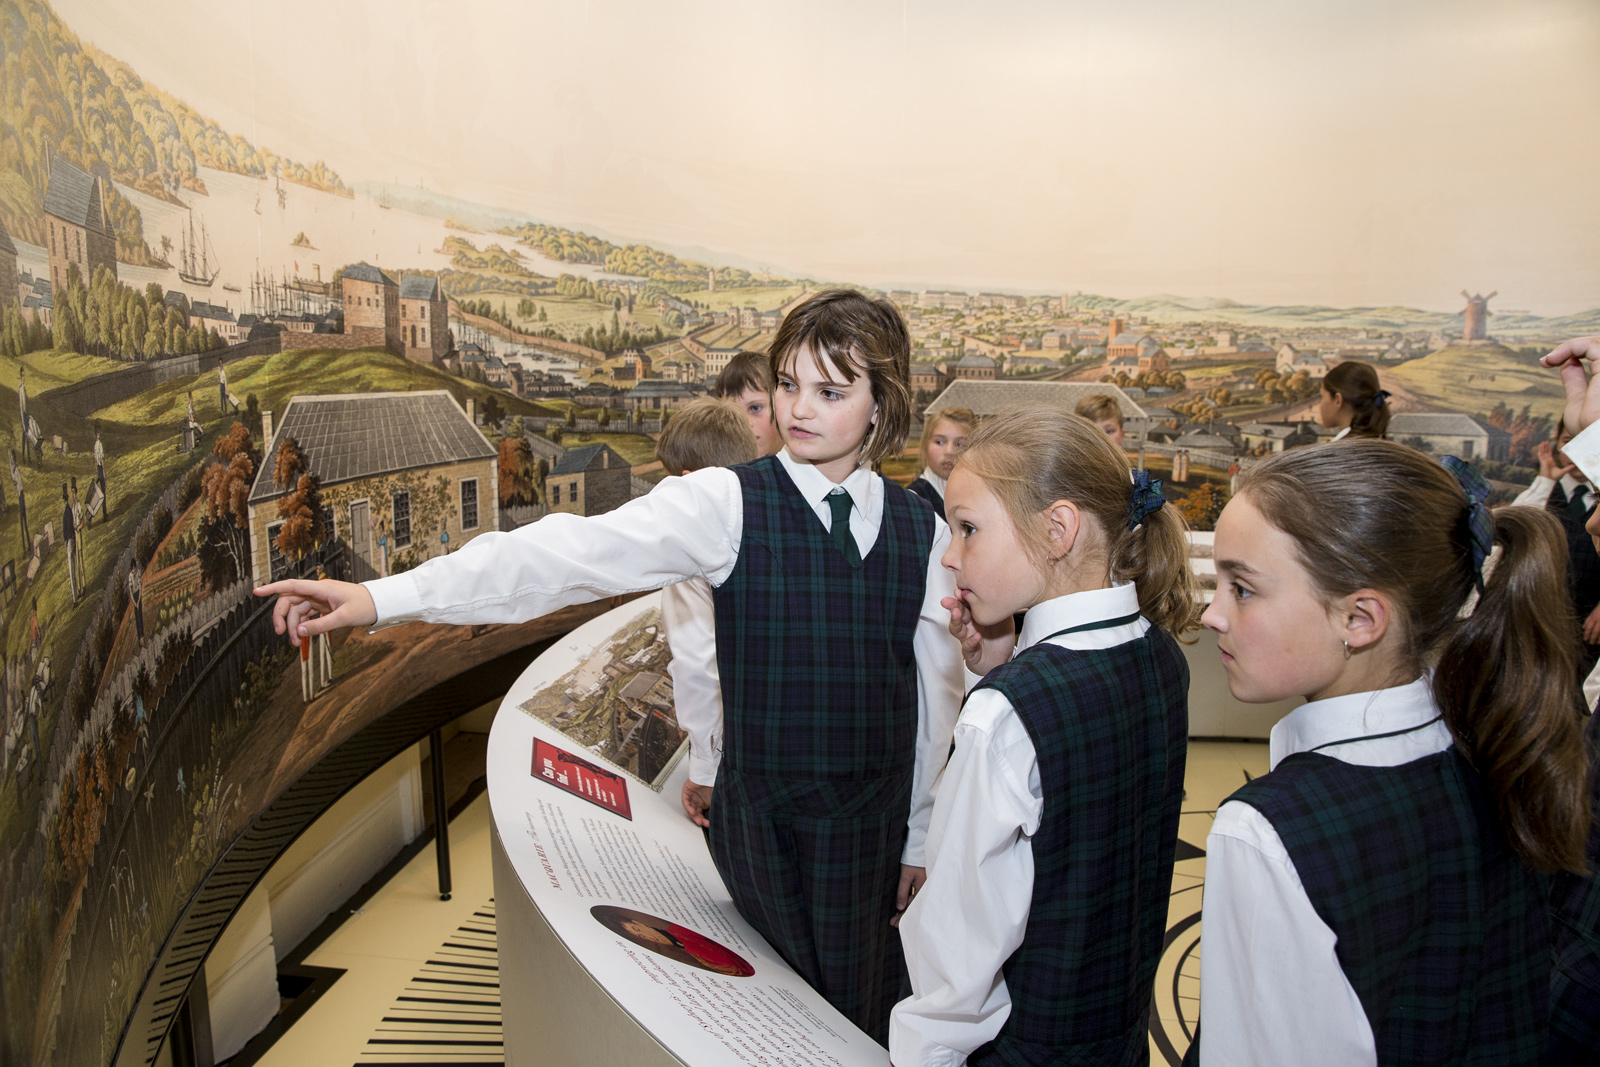 Students Investigating A Panorama Painting Of Sydney Cove